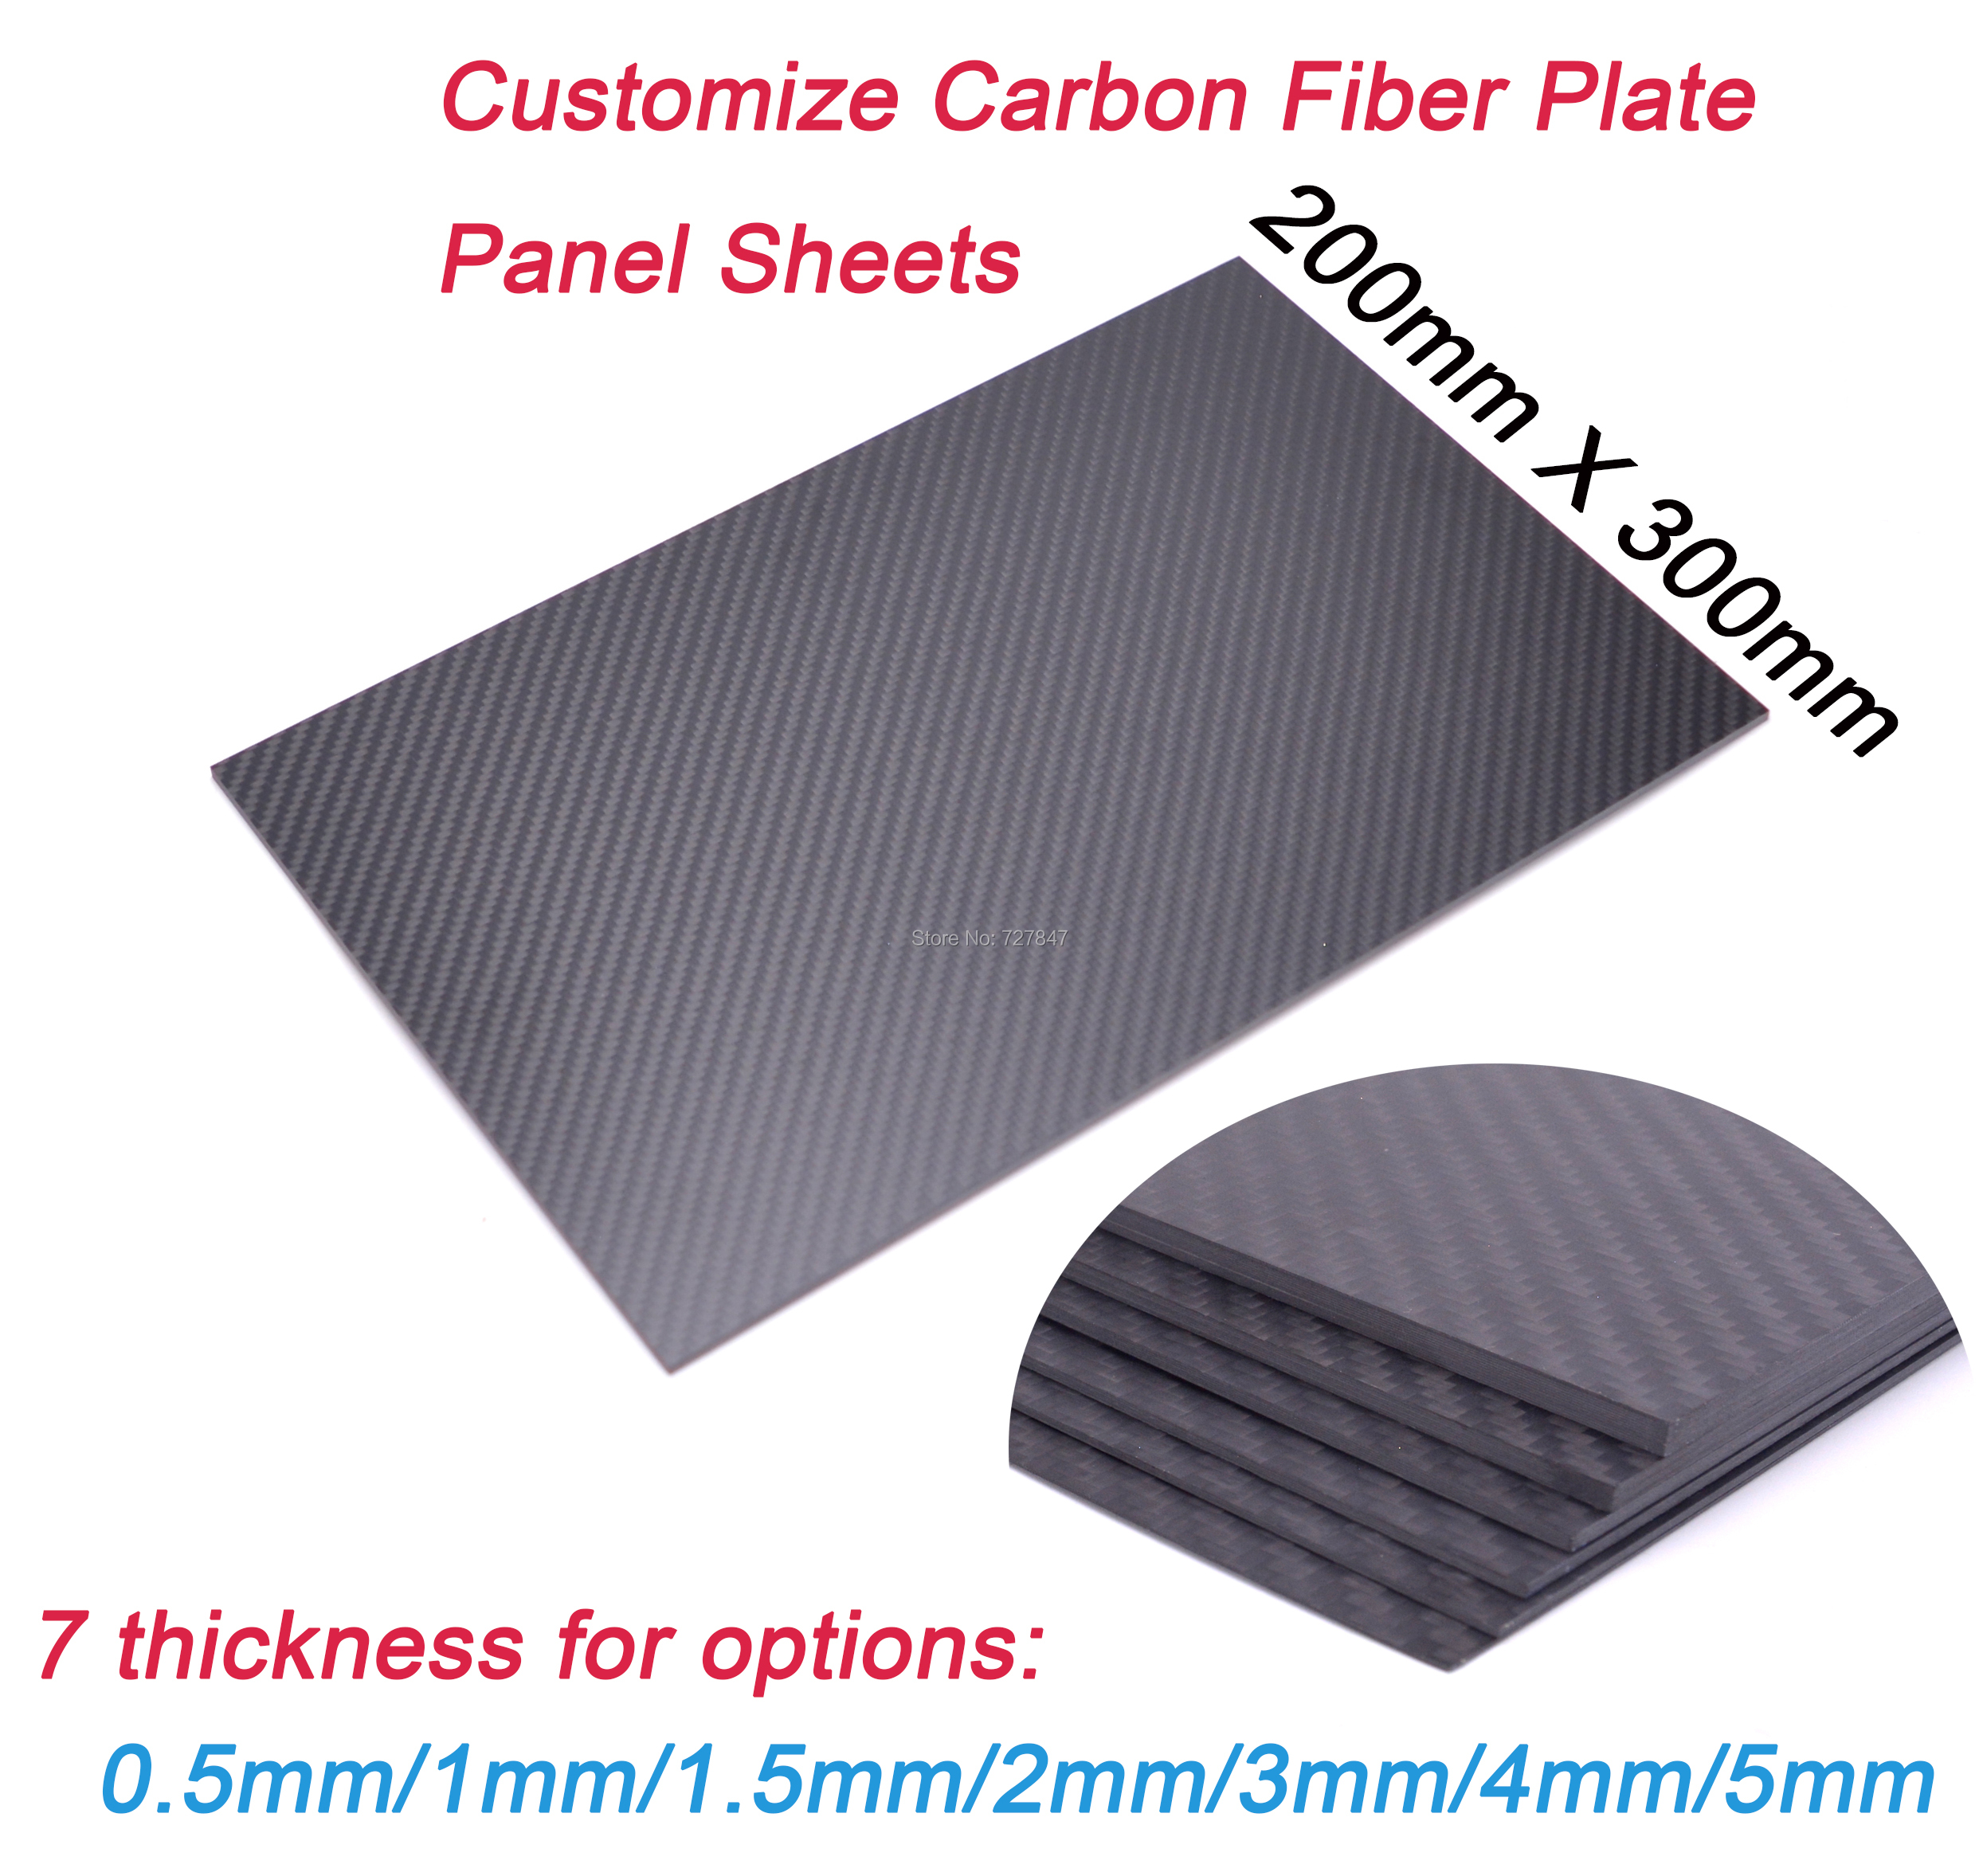 200mm X 300mm X 0.5mm 1mm 1.5mm 2mm 3mm <font><b>4mm</b></font> 5mm 3K <font><b>Carbon</b></font> Plate Panel <font><b>Sheets</b></font> High Composite Hardness Material <font><b>Carbon</b></font> <font><b>Fiber</b></font> Board image